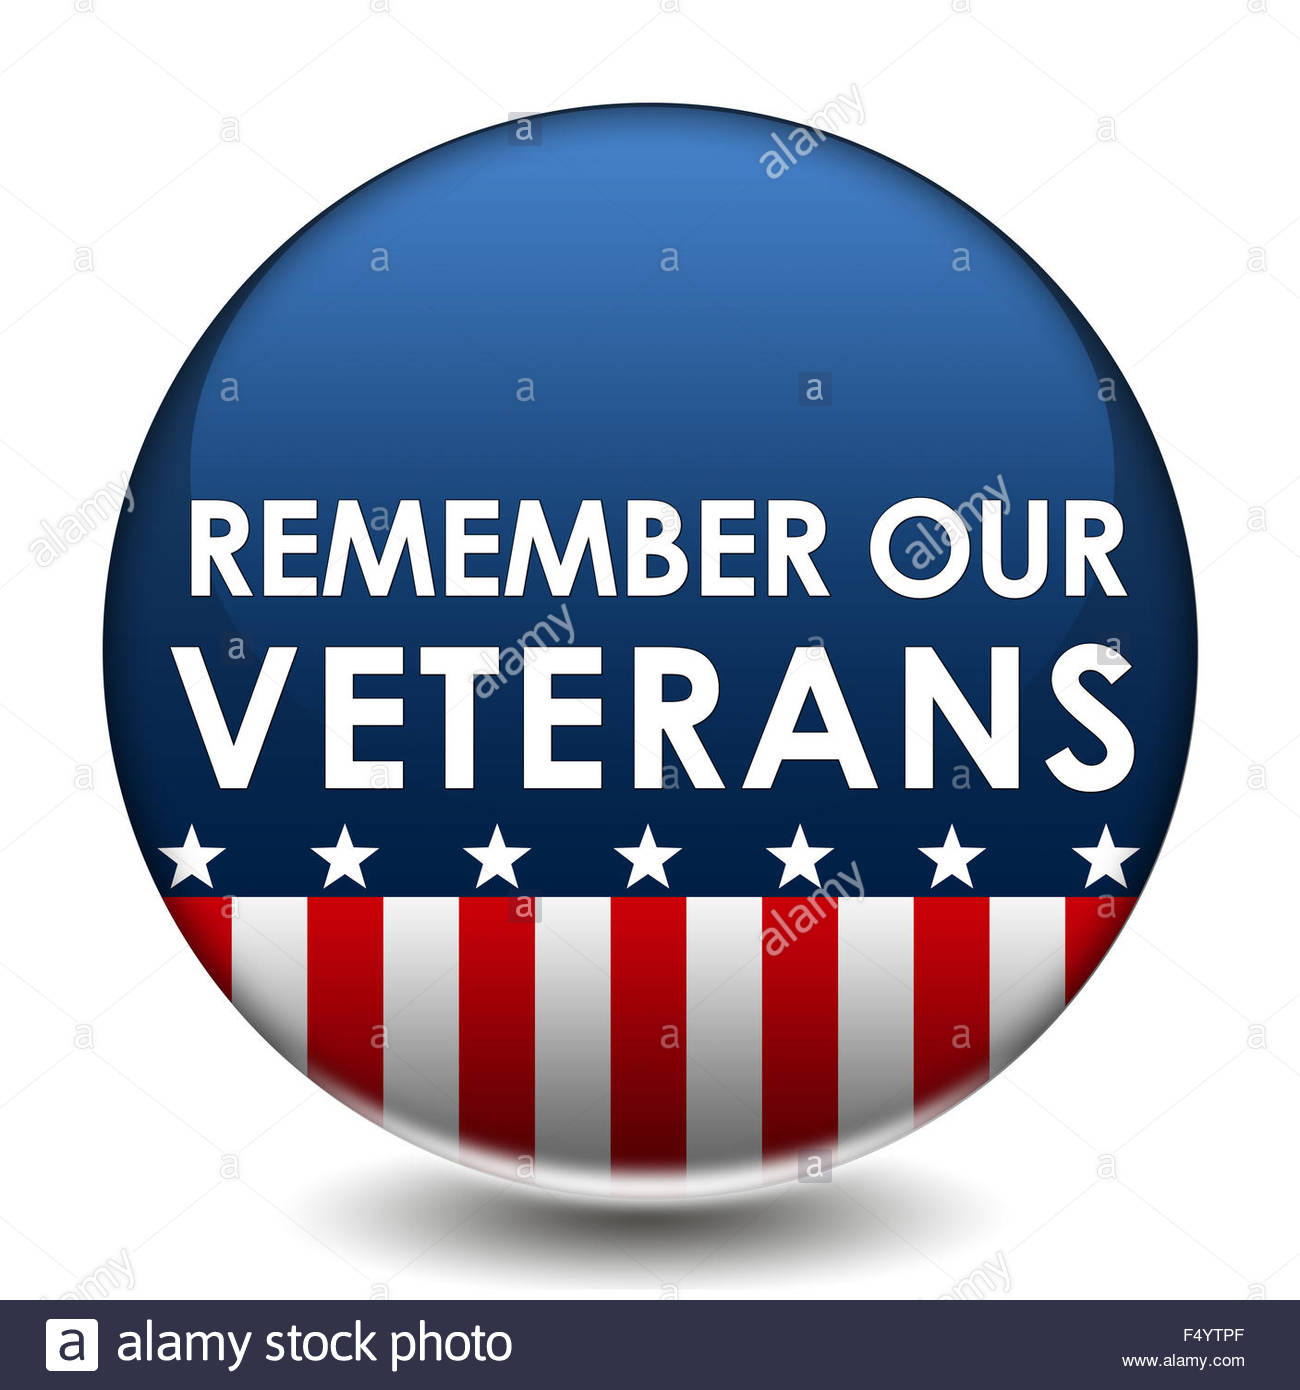 Remember our Veterans - Stock Image